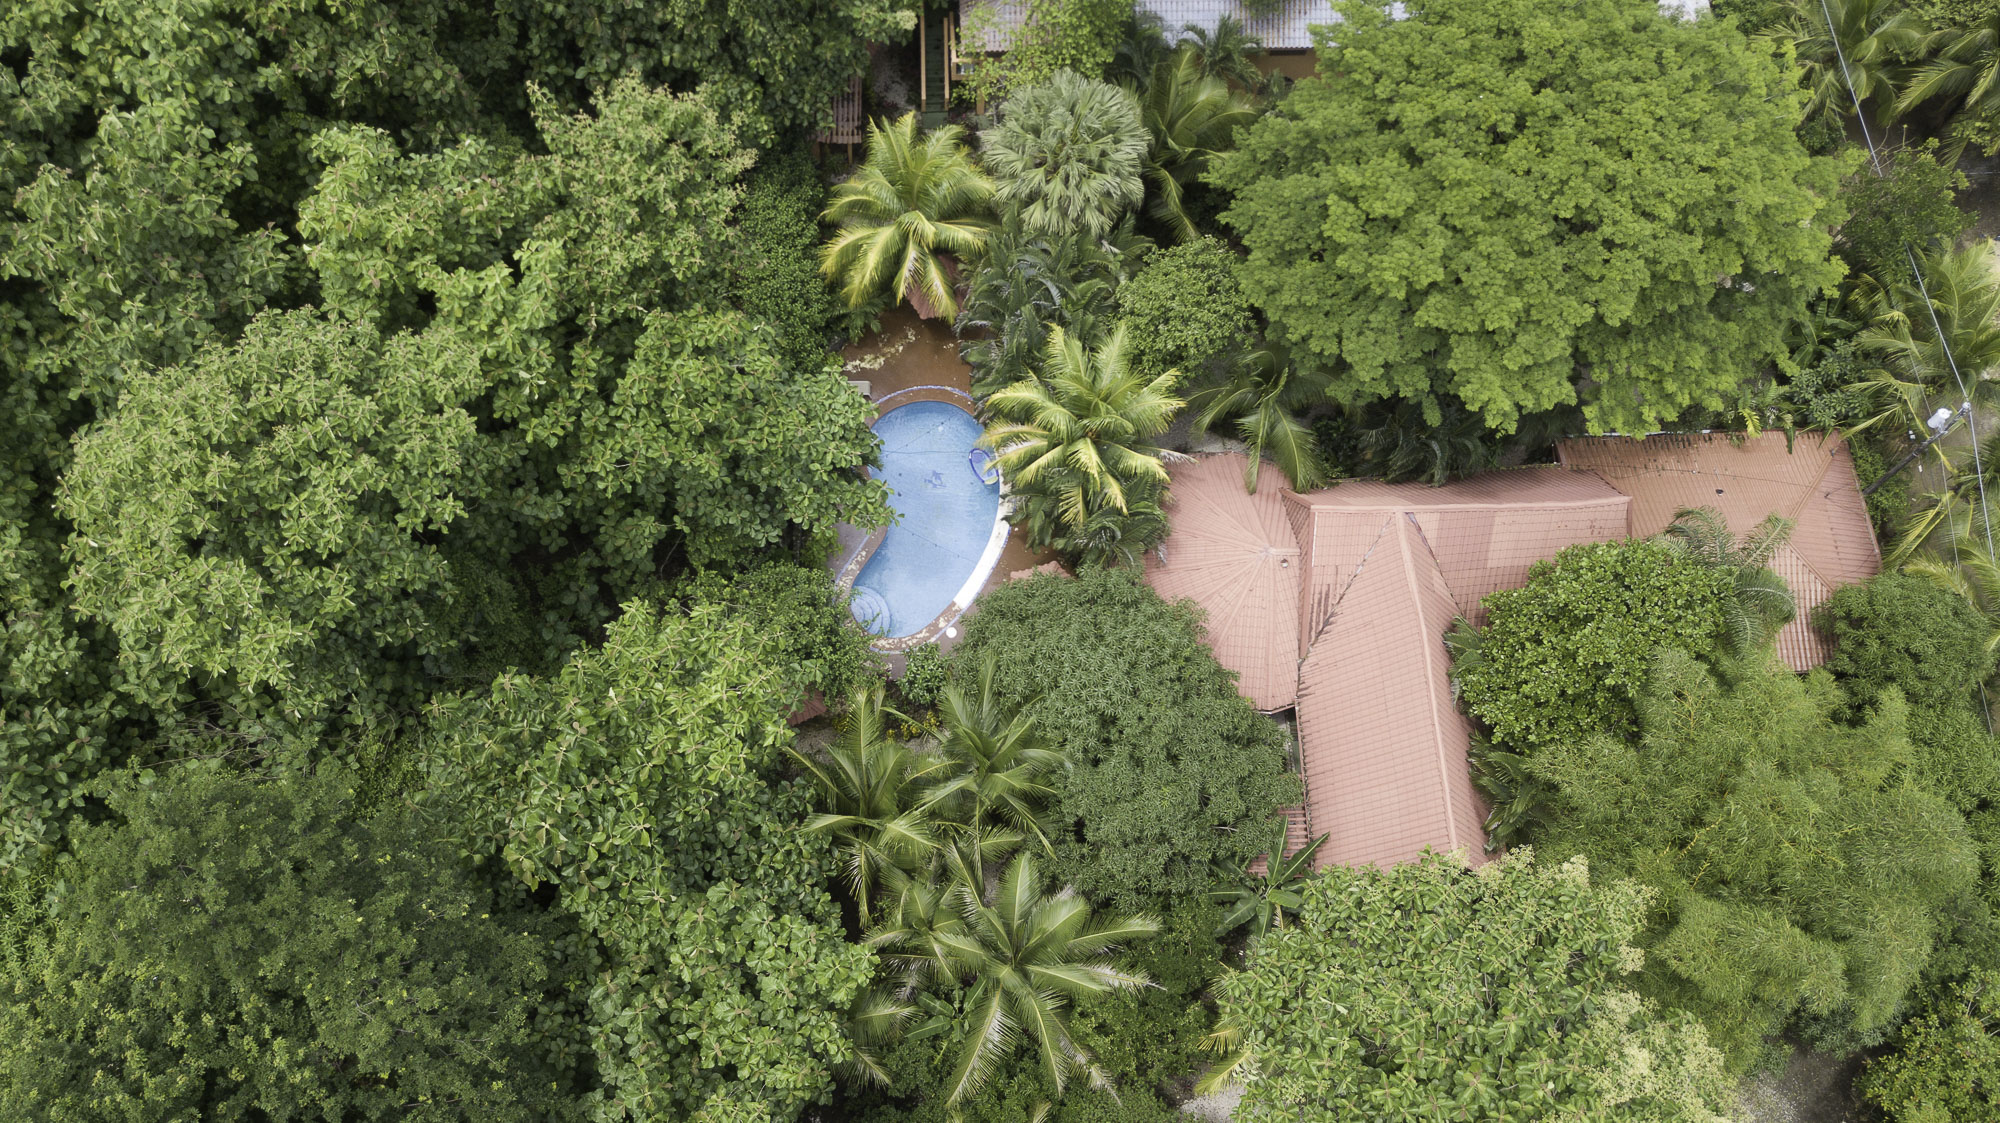 Teak Pacific- Income Producing Property, Priced To Sell